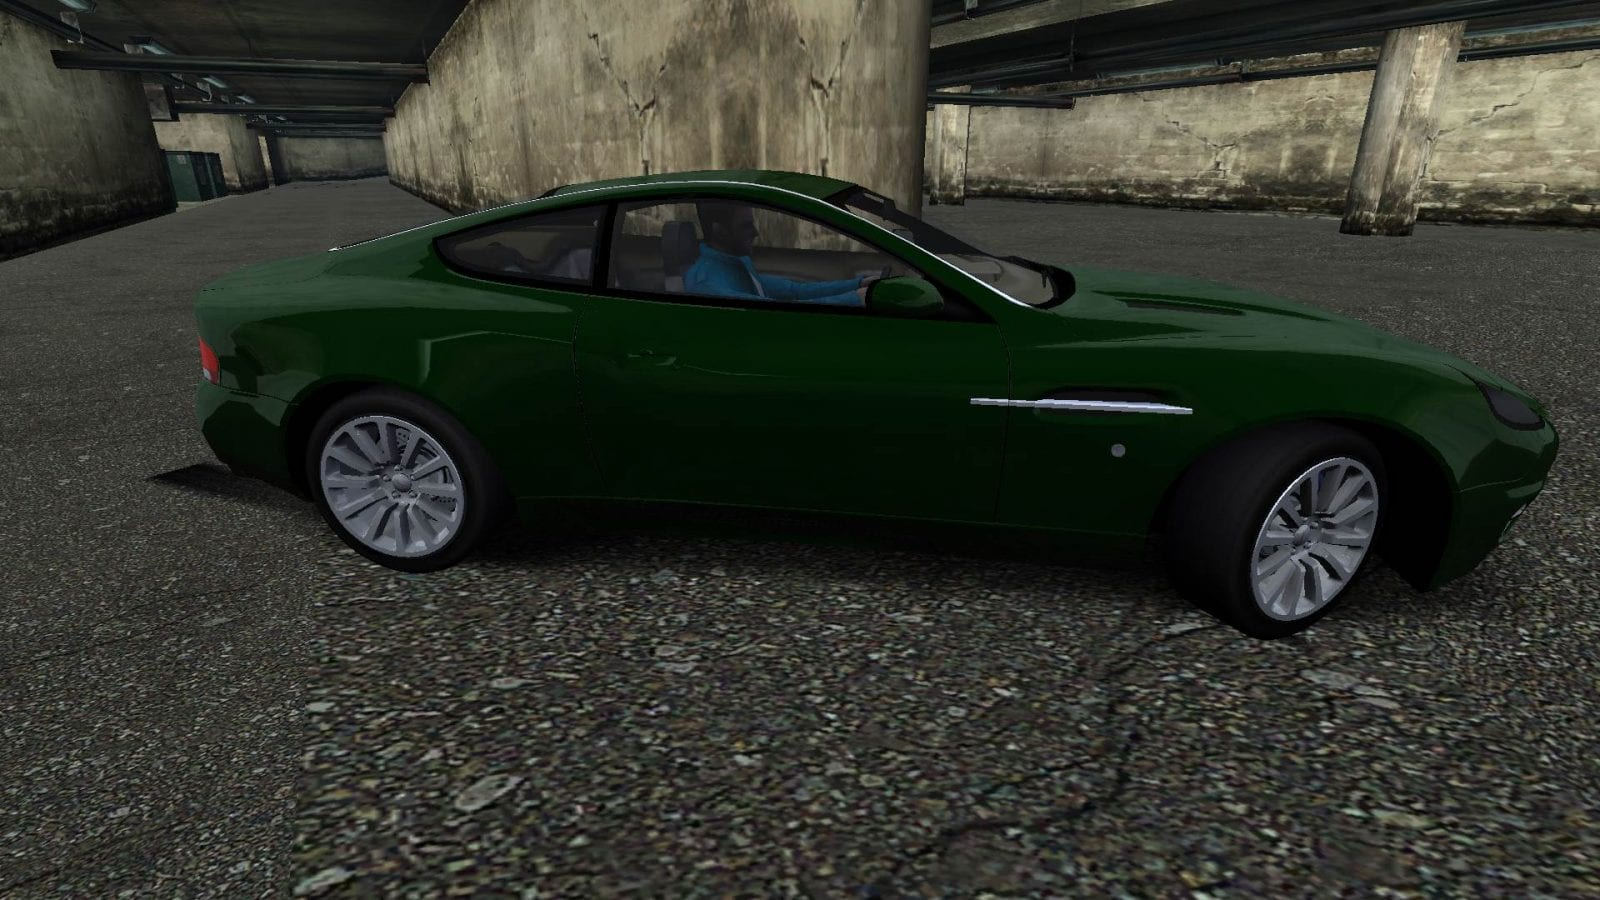 2001 Aston Martin V12 Vanquish Mod For Need For Speed Most Wanted